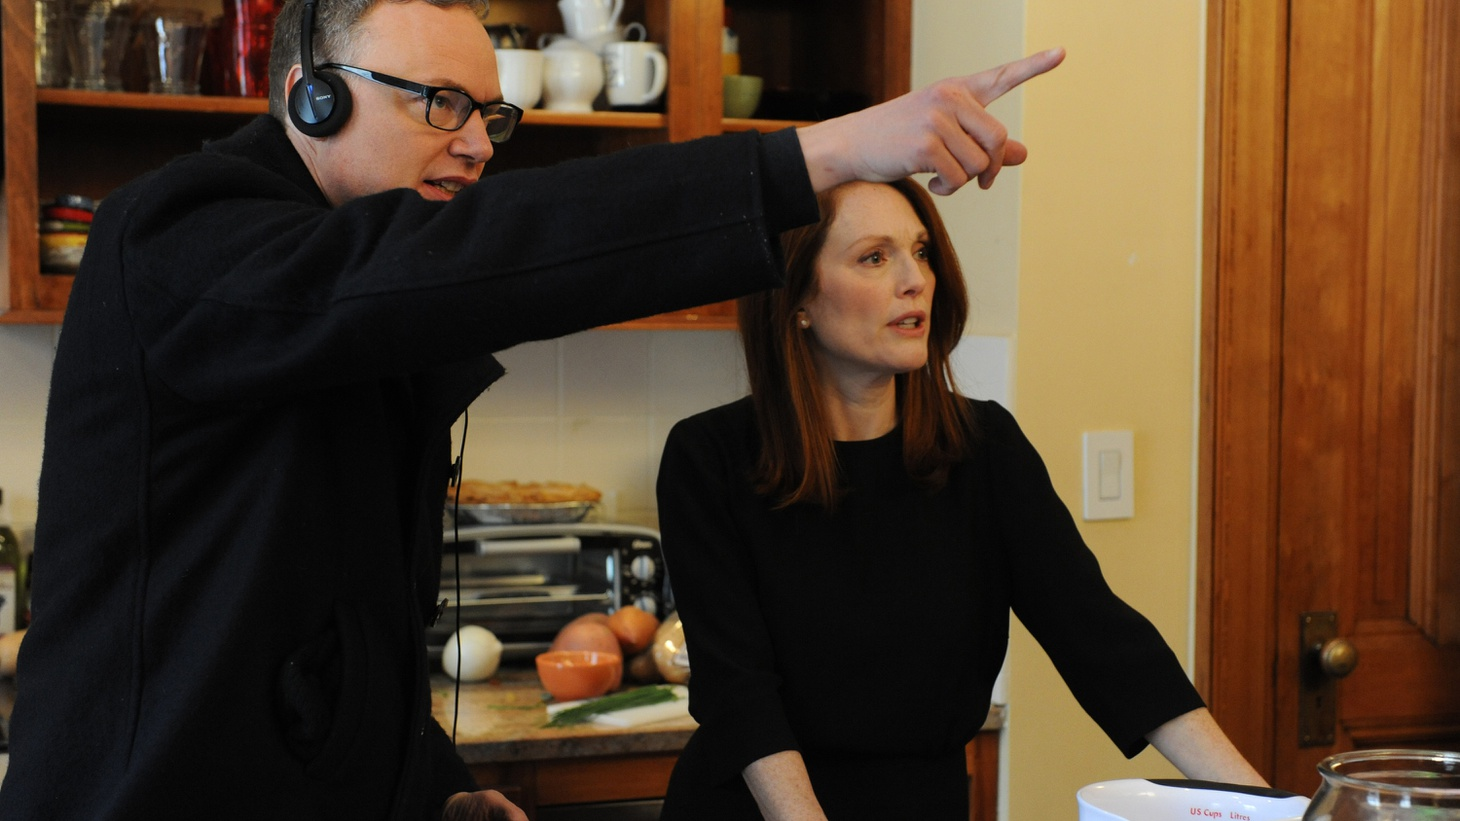 Julianne Moore is in Oscar contention for playing a woman struggling with Alzheimer's in Still Alice. The film was directed by a married couple with their own story of battling a debilitating disease.